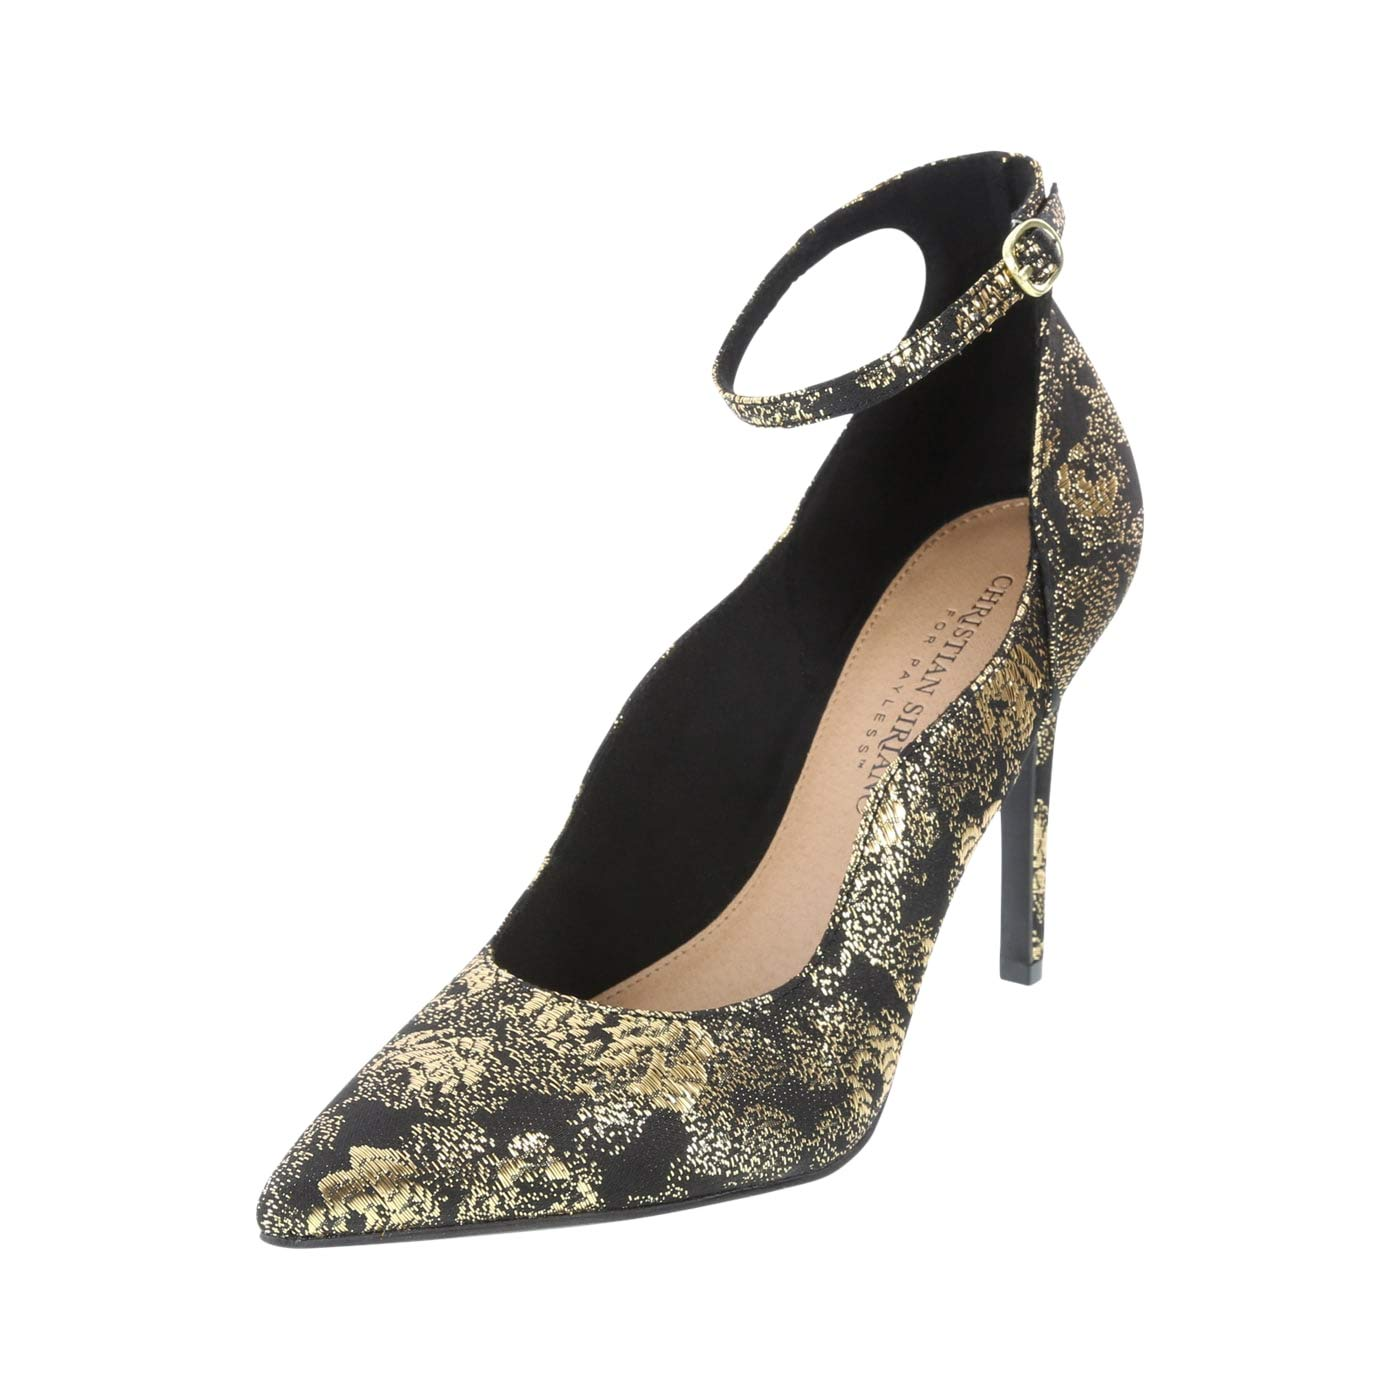 3a33f091d7d Christian Siriano for Payless Women's Kenni Ankle Strap Heel